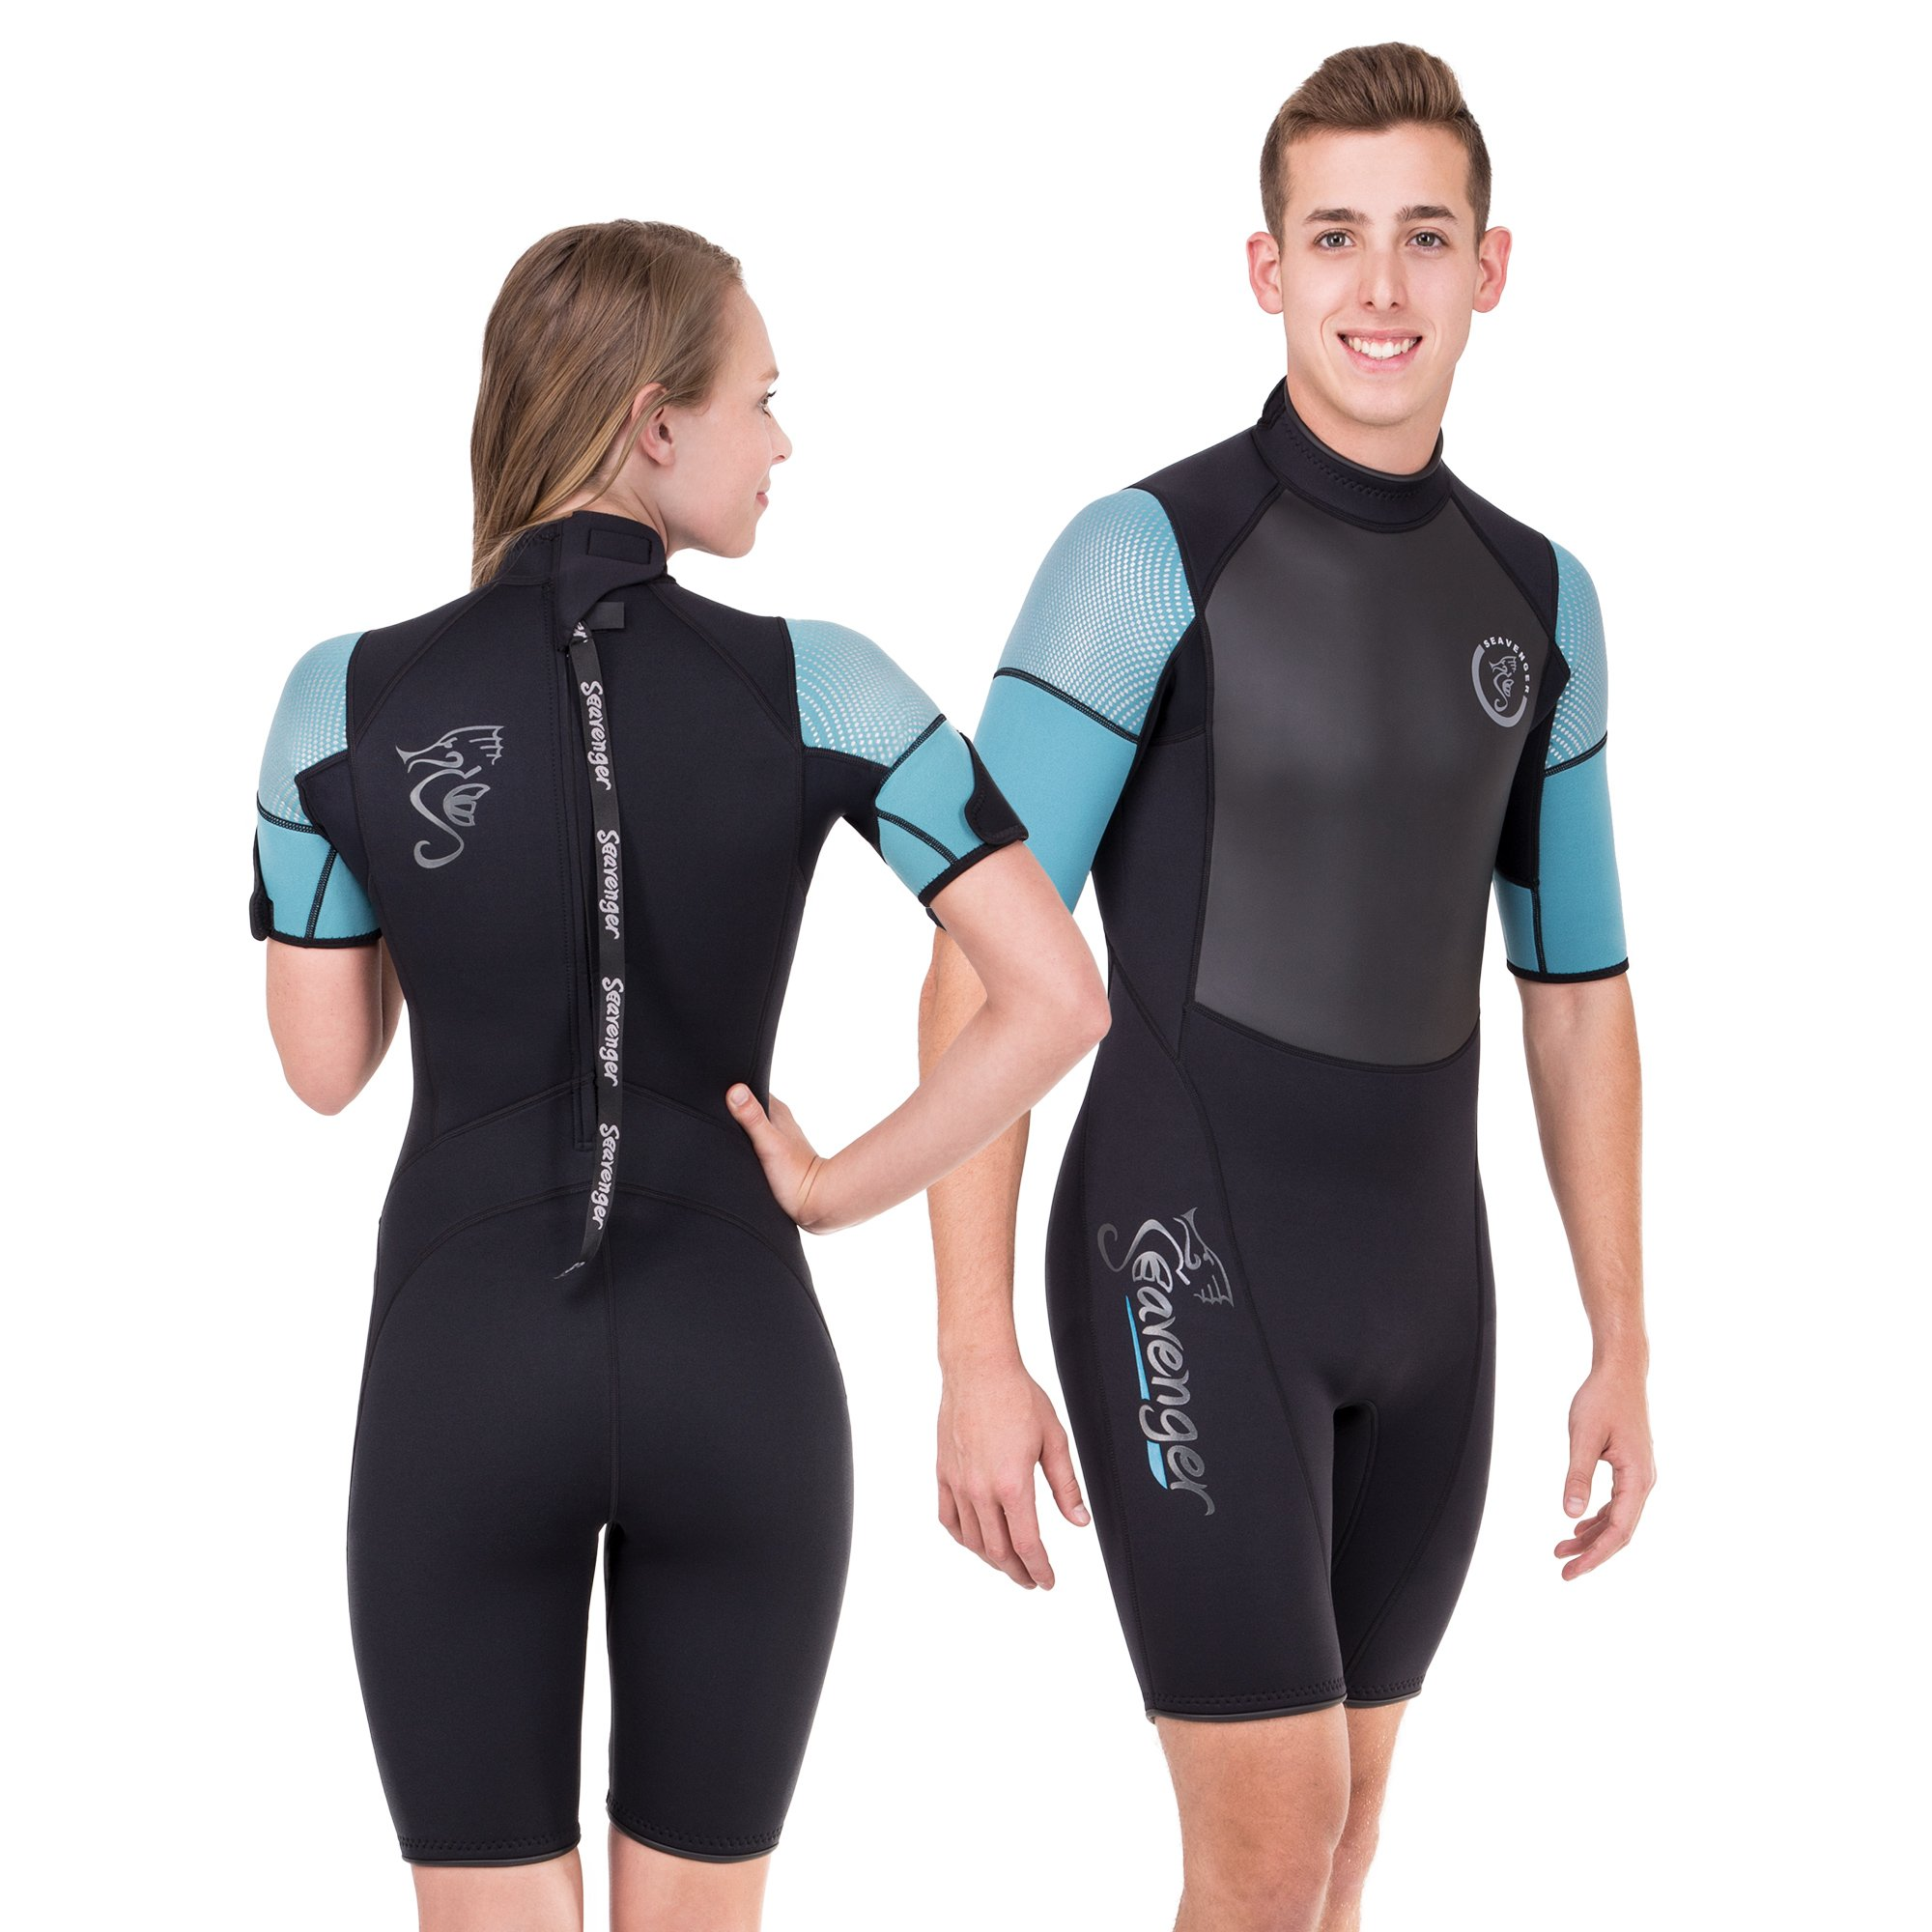 Seavenger Navigator 3mm Shorty | Short Sleeve Wetsuit for Men and Women | Surfing, Snorkeling, Scuba Diving (Surfing Aqua, Men's Small) by Seavenger (Image #1)